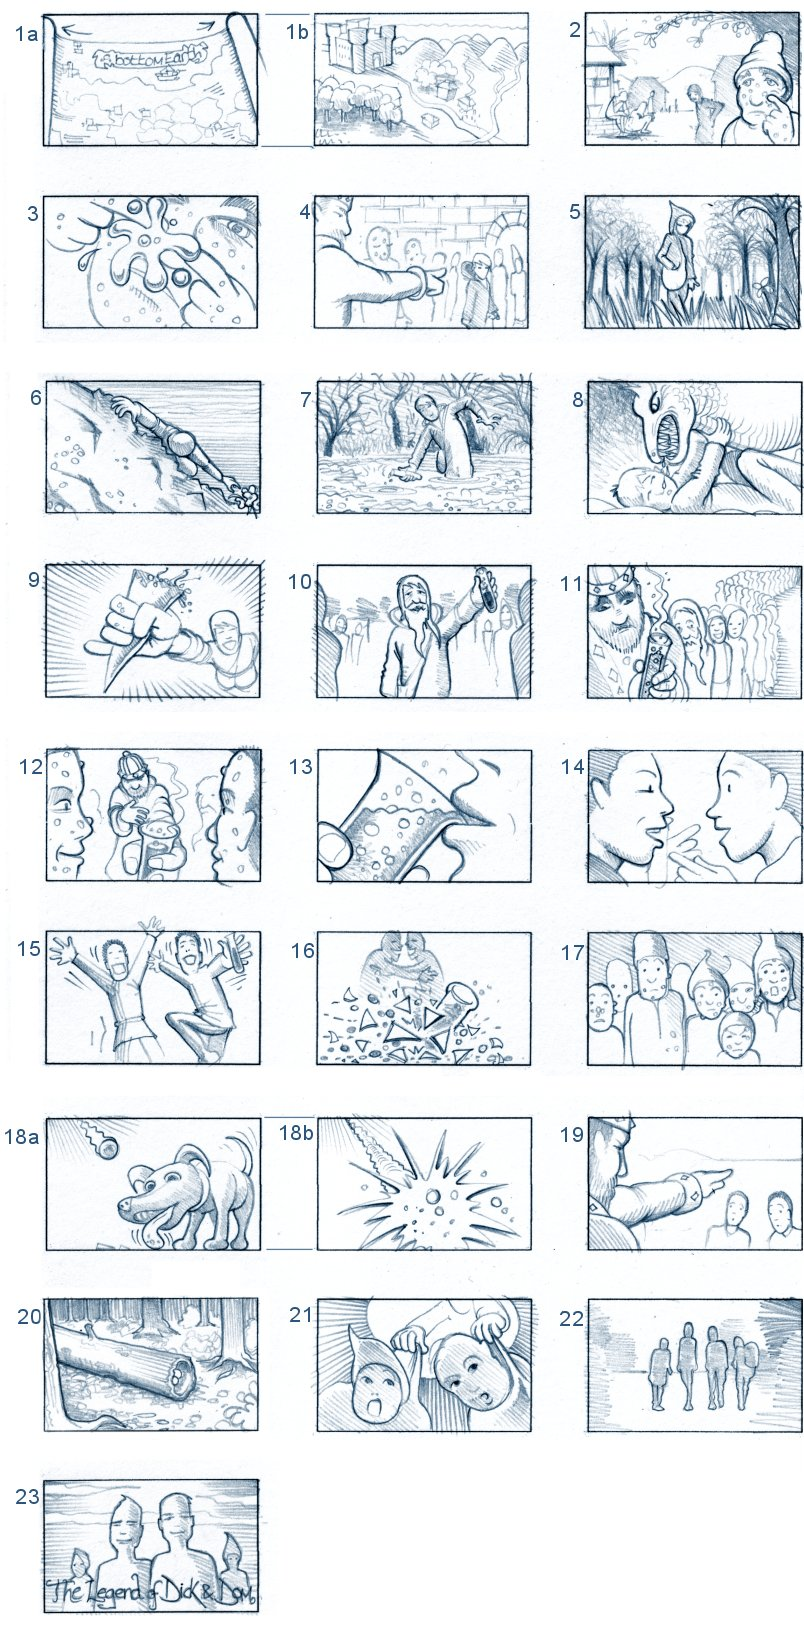 DICK & DOM'S OPENING SEQUENCE STORYBOARD BY ANDY SPARROW